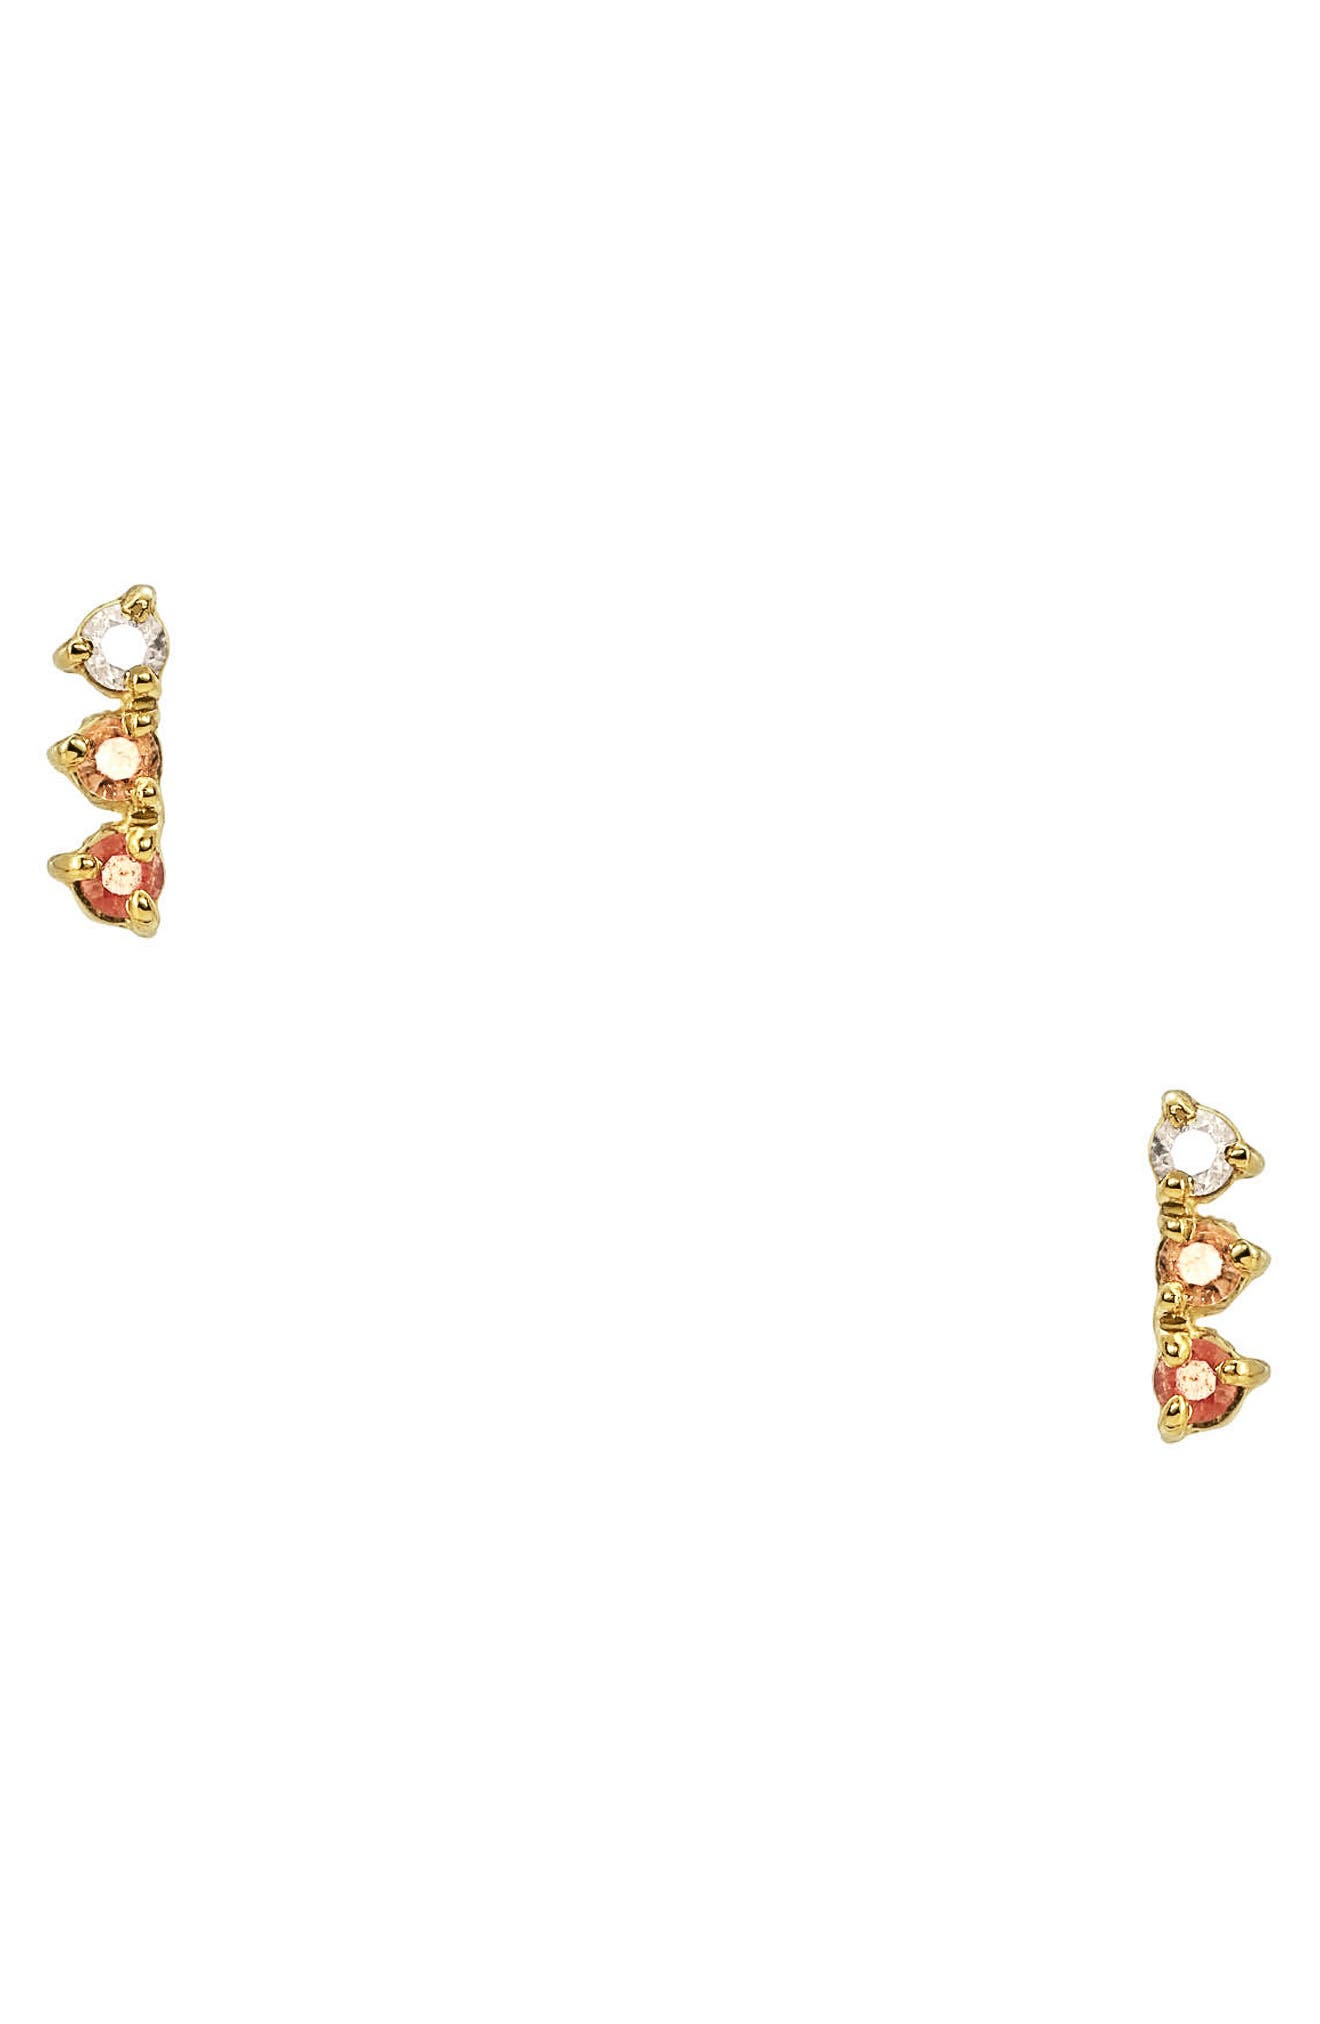 Alternate Image 1 Selected - WWAKE Counting Collection Three-Step Statement Earrings (Nordstrom Exclusive)